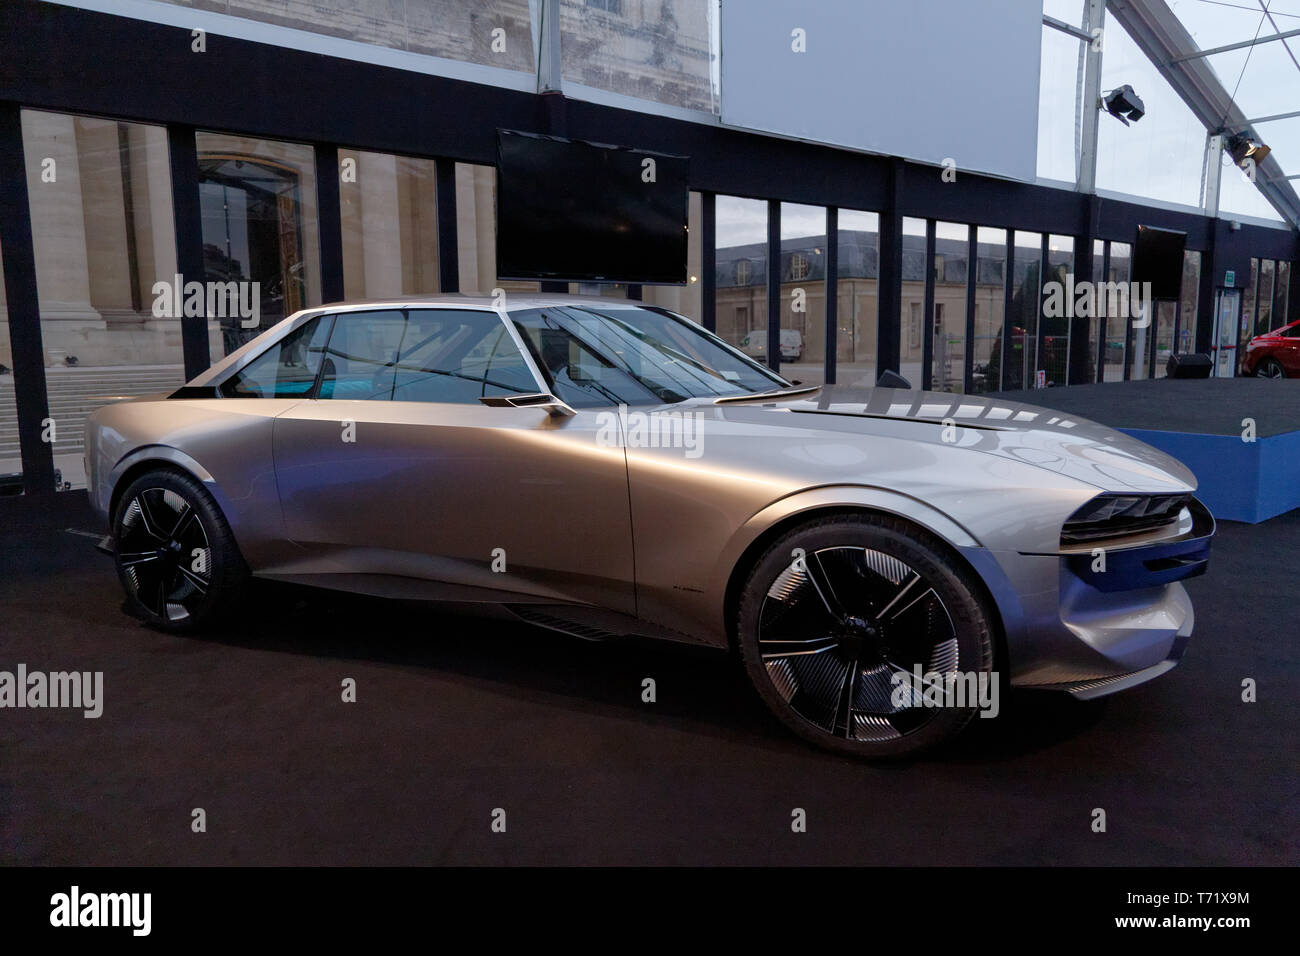 Peugeot E-Legend Concept, Grand Prix of the most beautiful concept car at the 34th International Automobile Festival. ©: V Phitoussi/Alamy Stock Photo - Stock Image